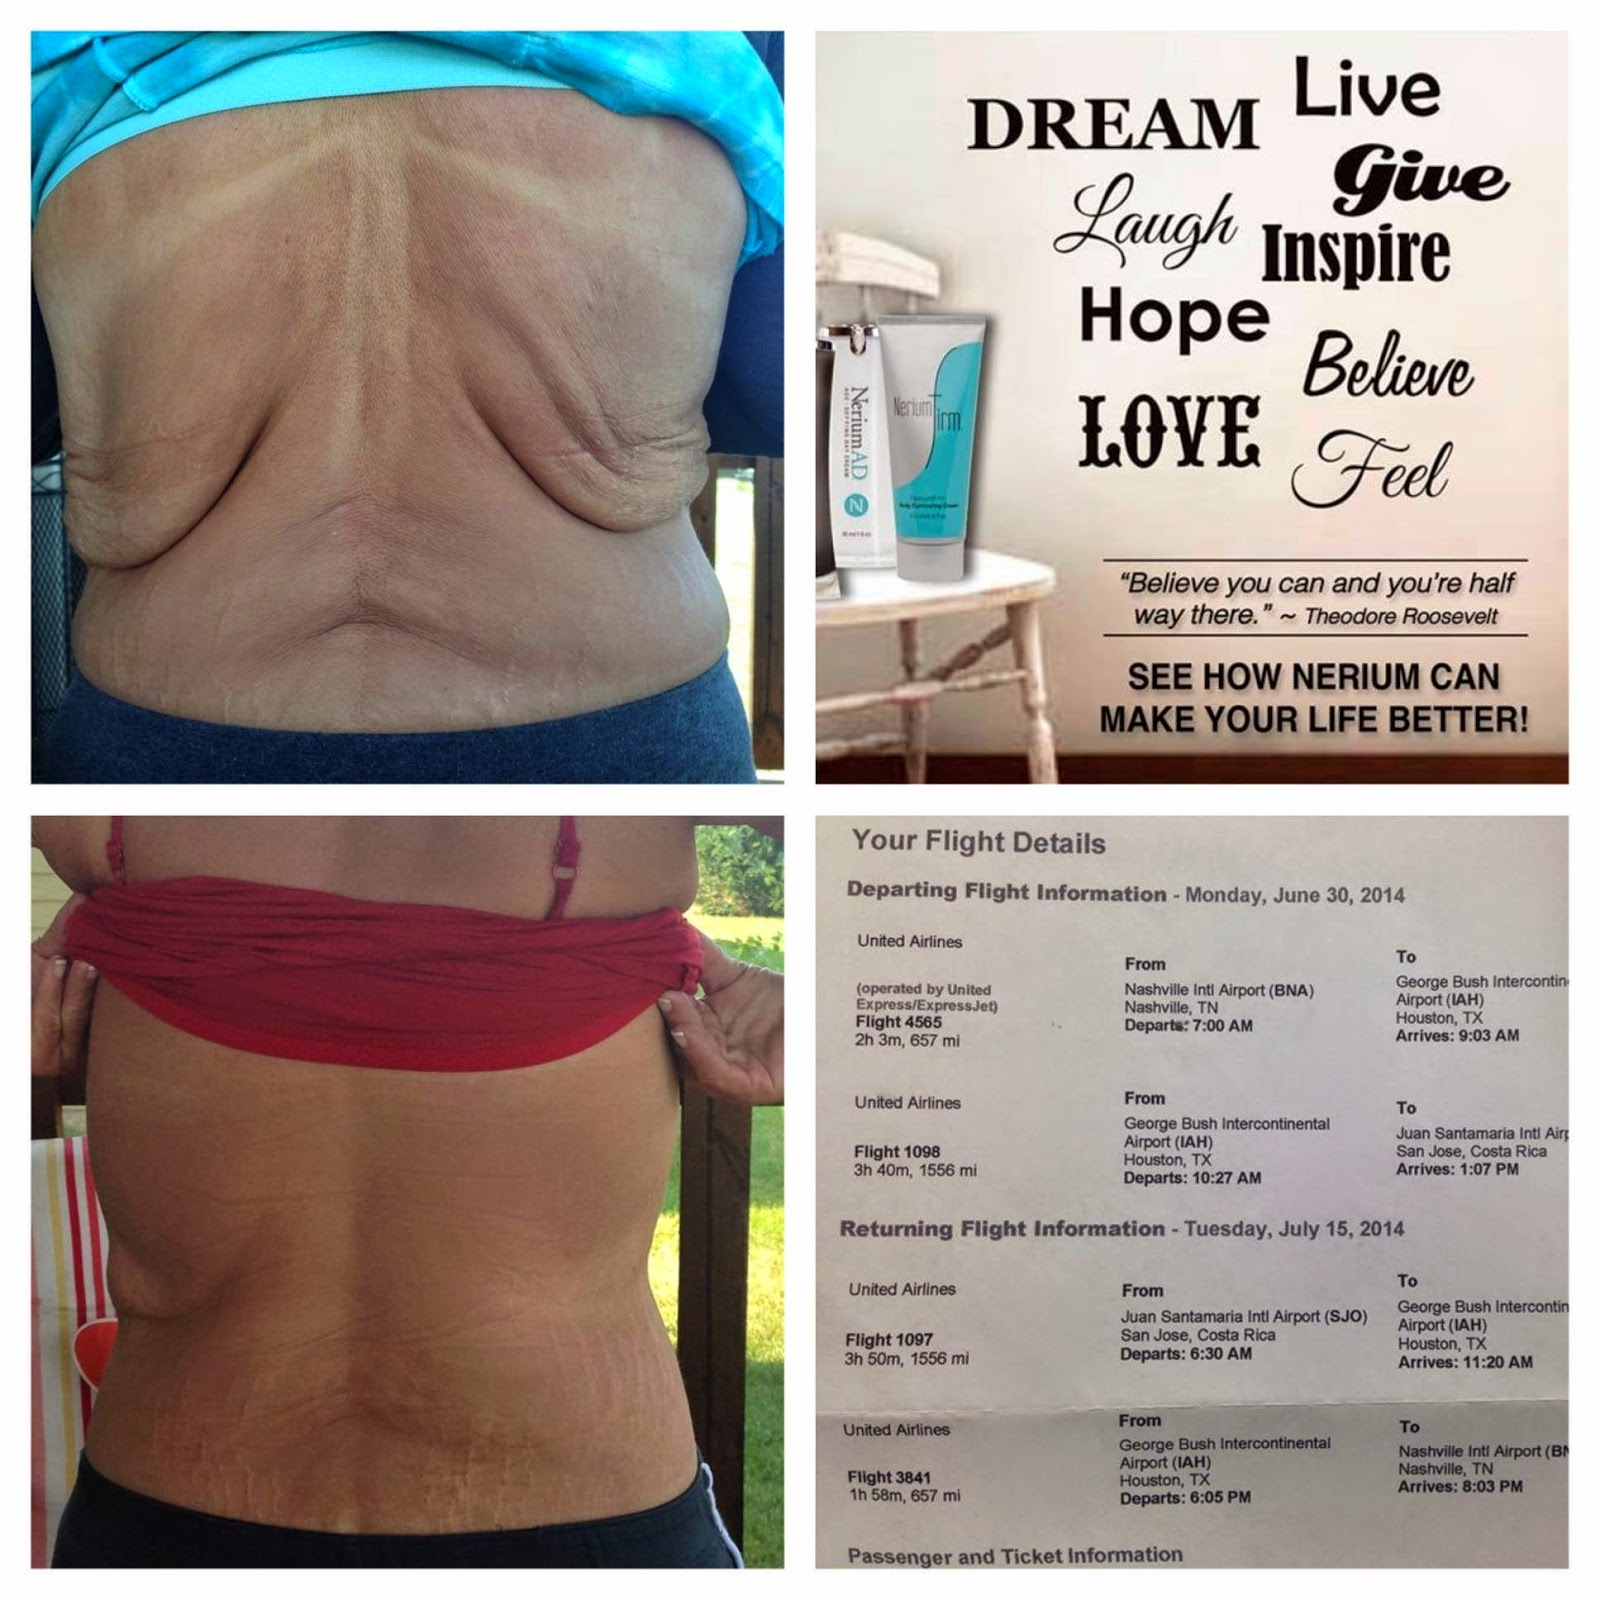 Nerium Firm Images Nerium Firm Results From